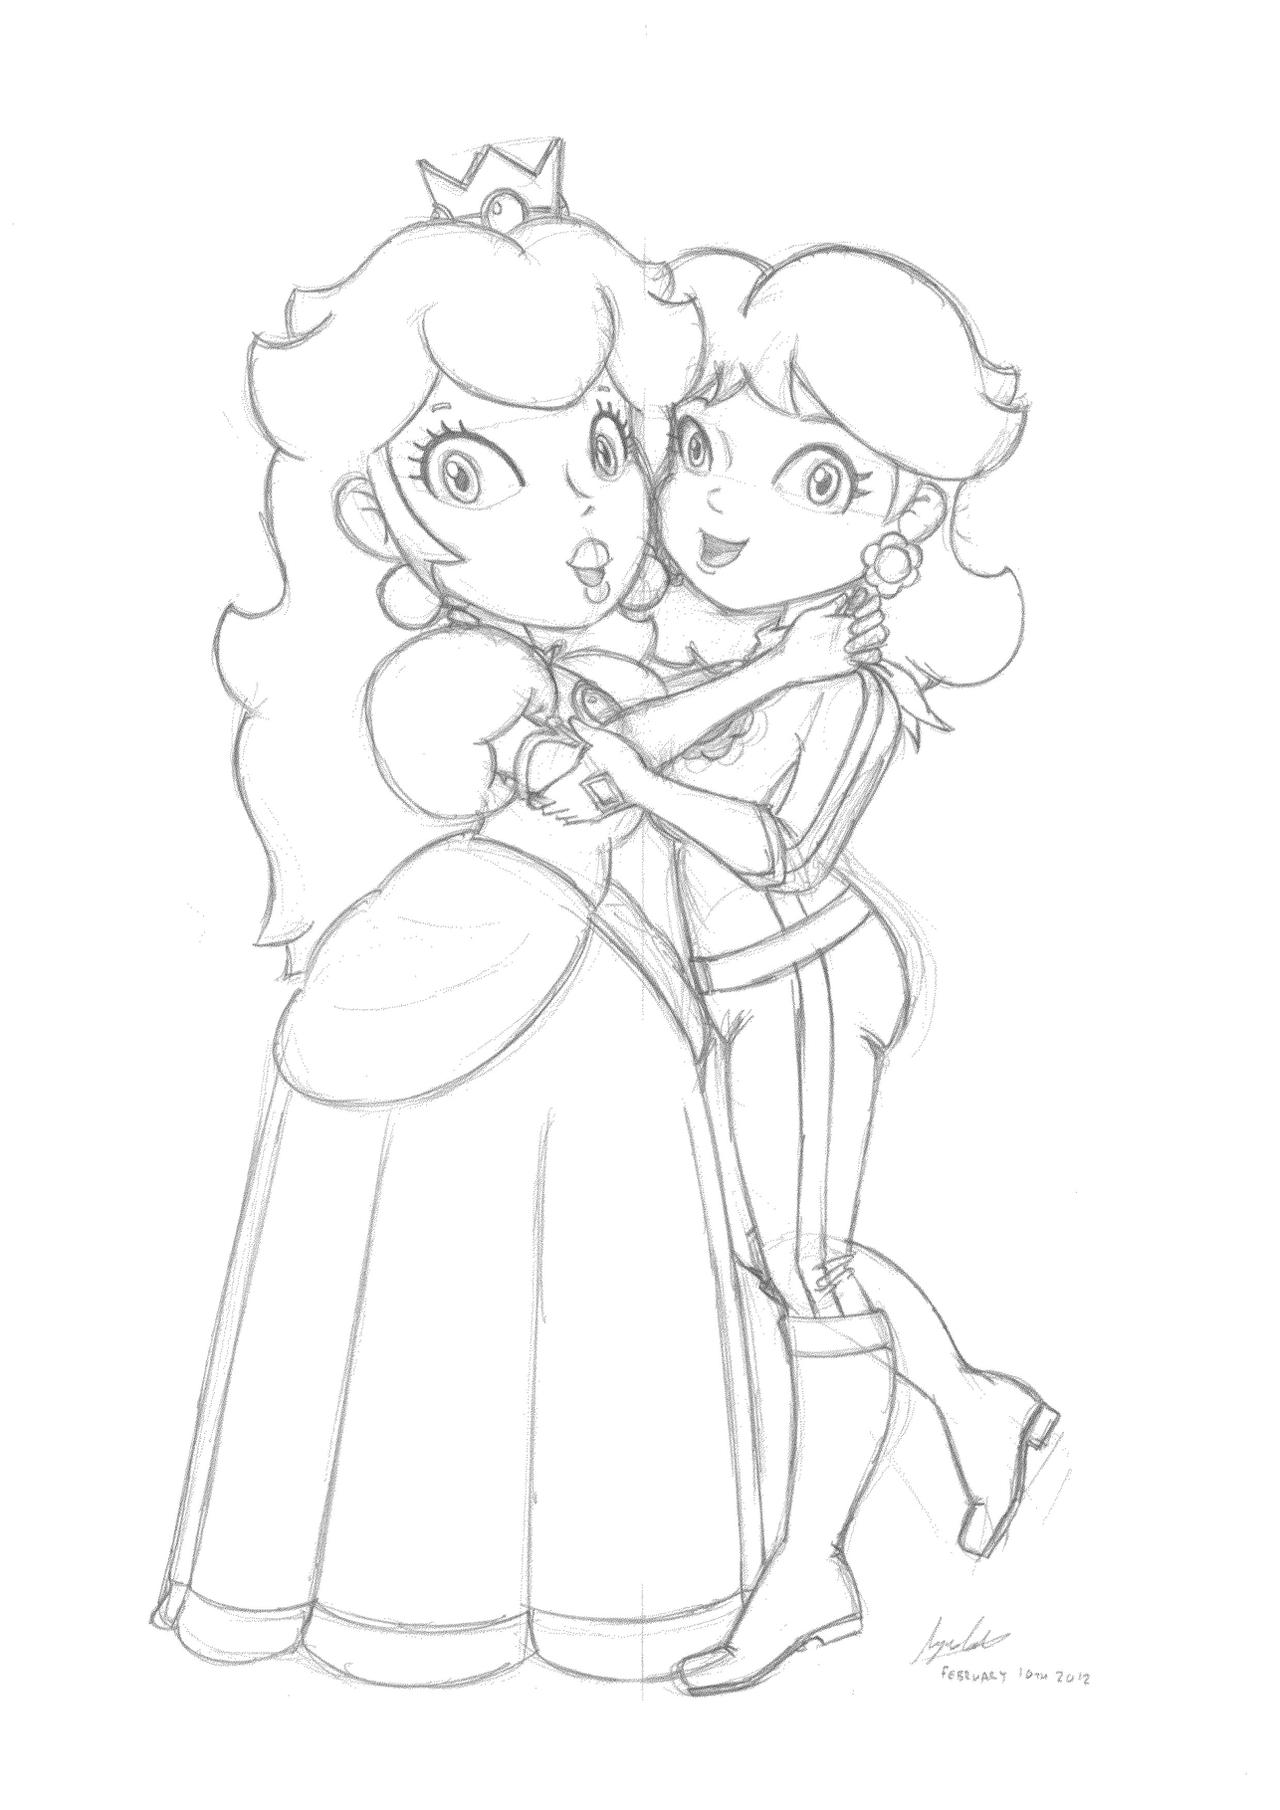 Princess peach coloring pages to print - Princess Peach Coloring Pages Games Princess Daisy Coloring Pages To Print Peach Hugging Daisy Sketch